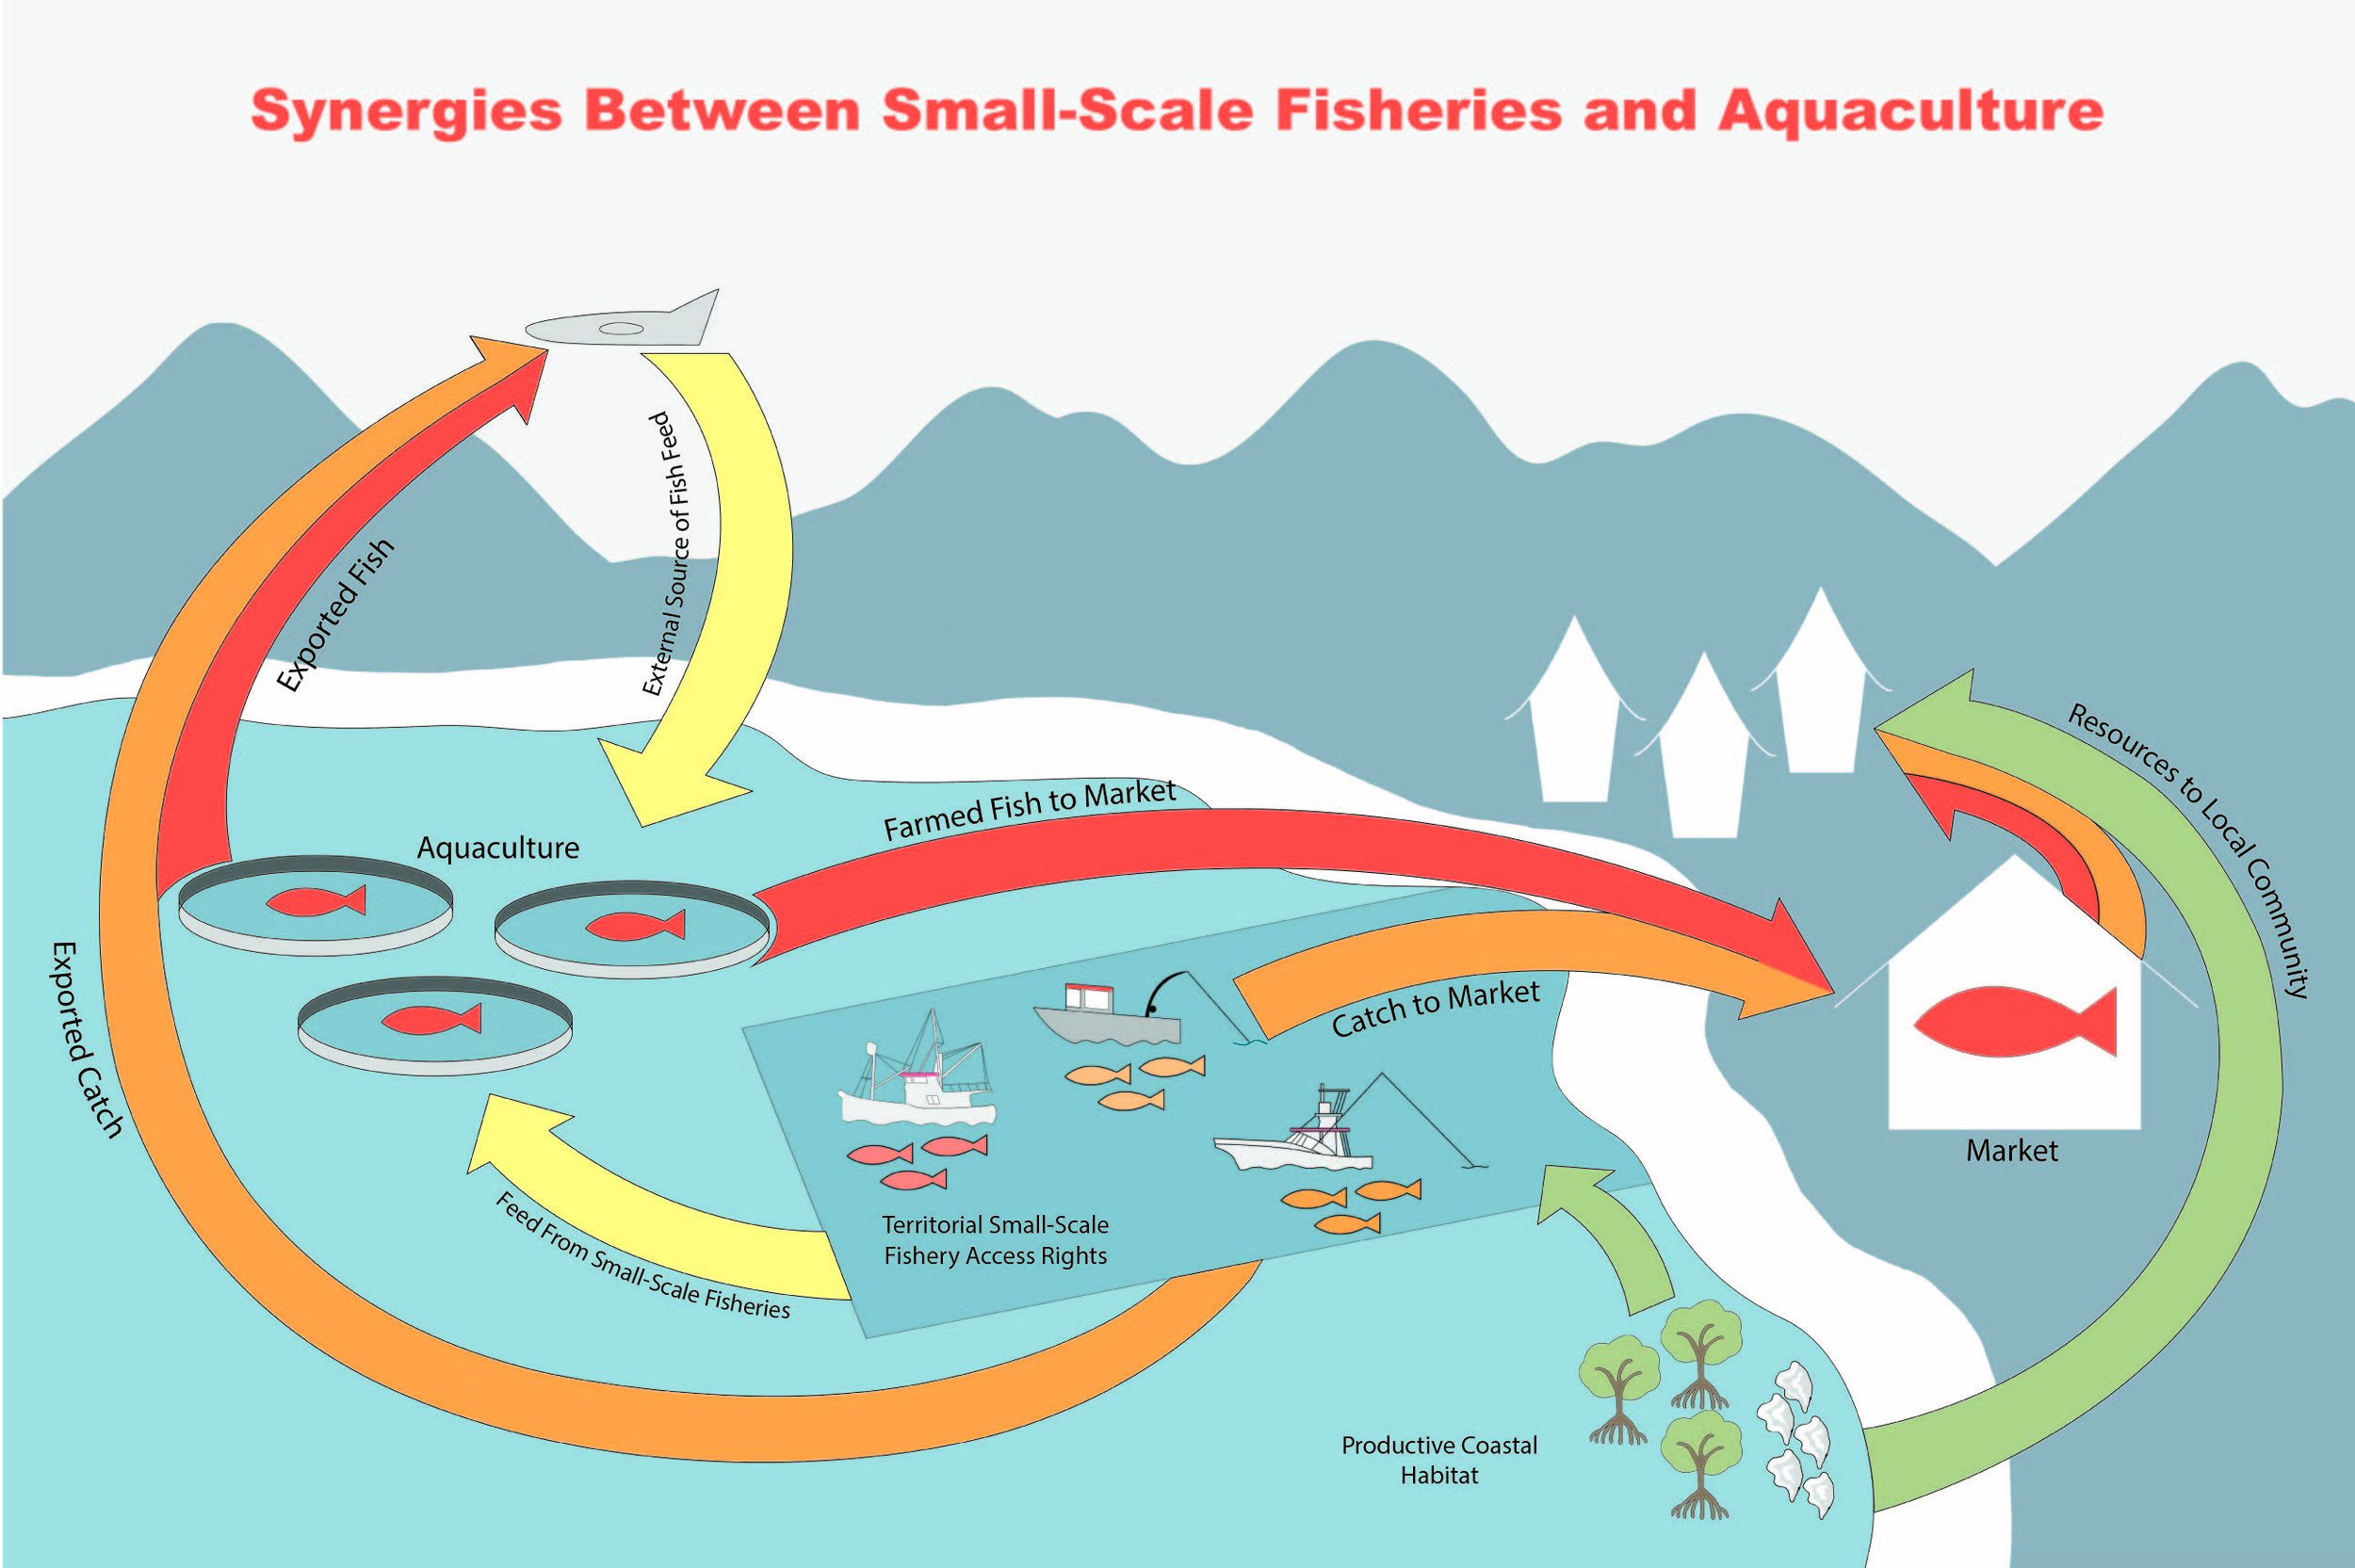 - This diagram is the counterpoint for the relationship between small-scale fisheries and aquaculture systems. This illustrates how the two can work synergistically when spatial rights, the supply chain, and risk to nearby habitats are taken into consideration.These two pieces are opening visuals for a scientific paper by Fiorenza Micheli et al. from Stanford's Hopkins Marine Station in Pacific Grove, California.